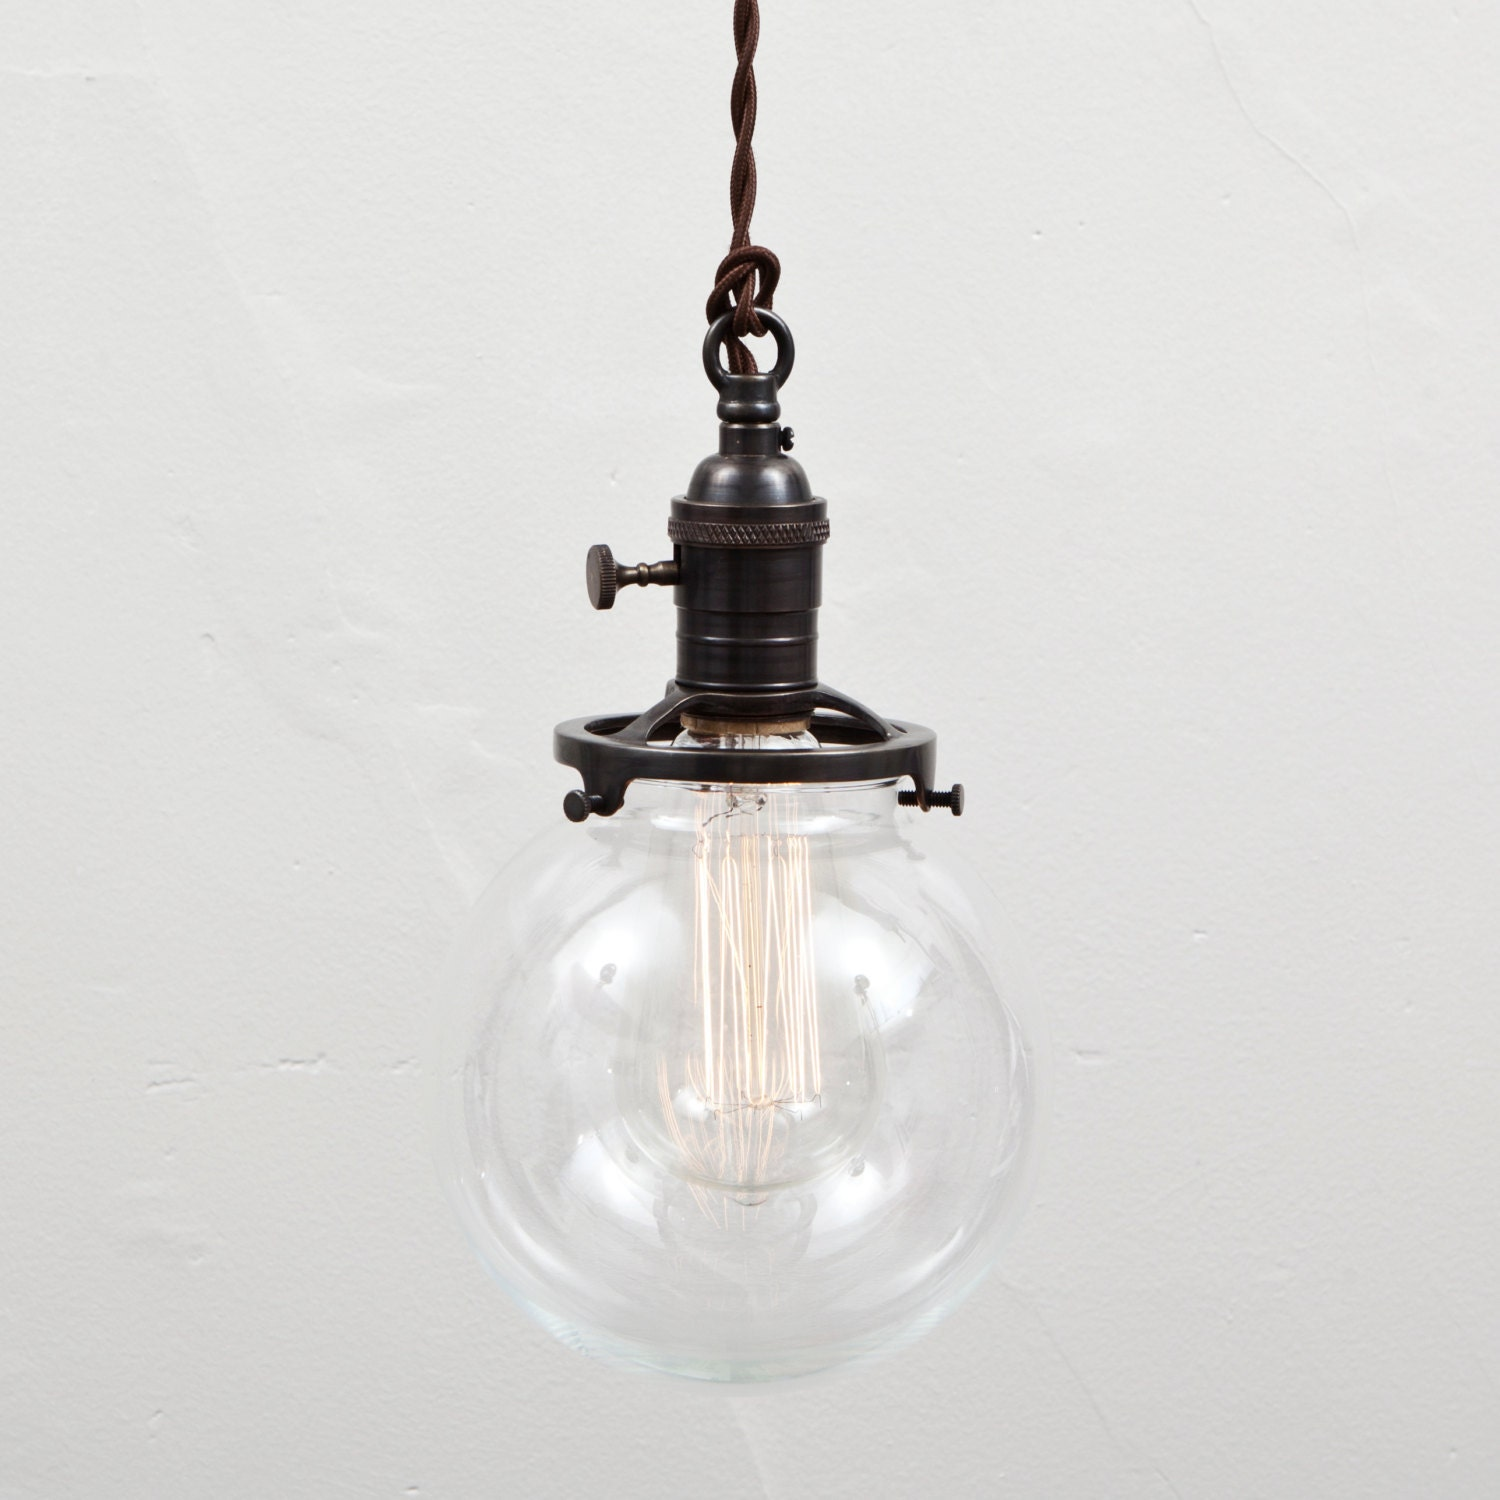 Pendant Light Glass Globe Shade Switch Socket By FleaMarketRx